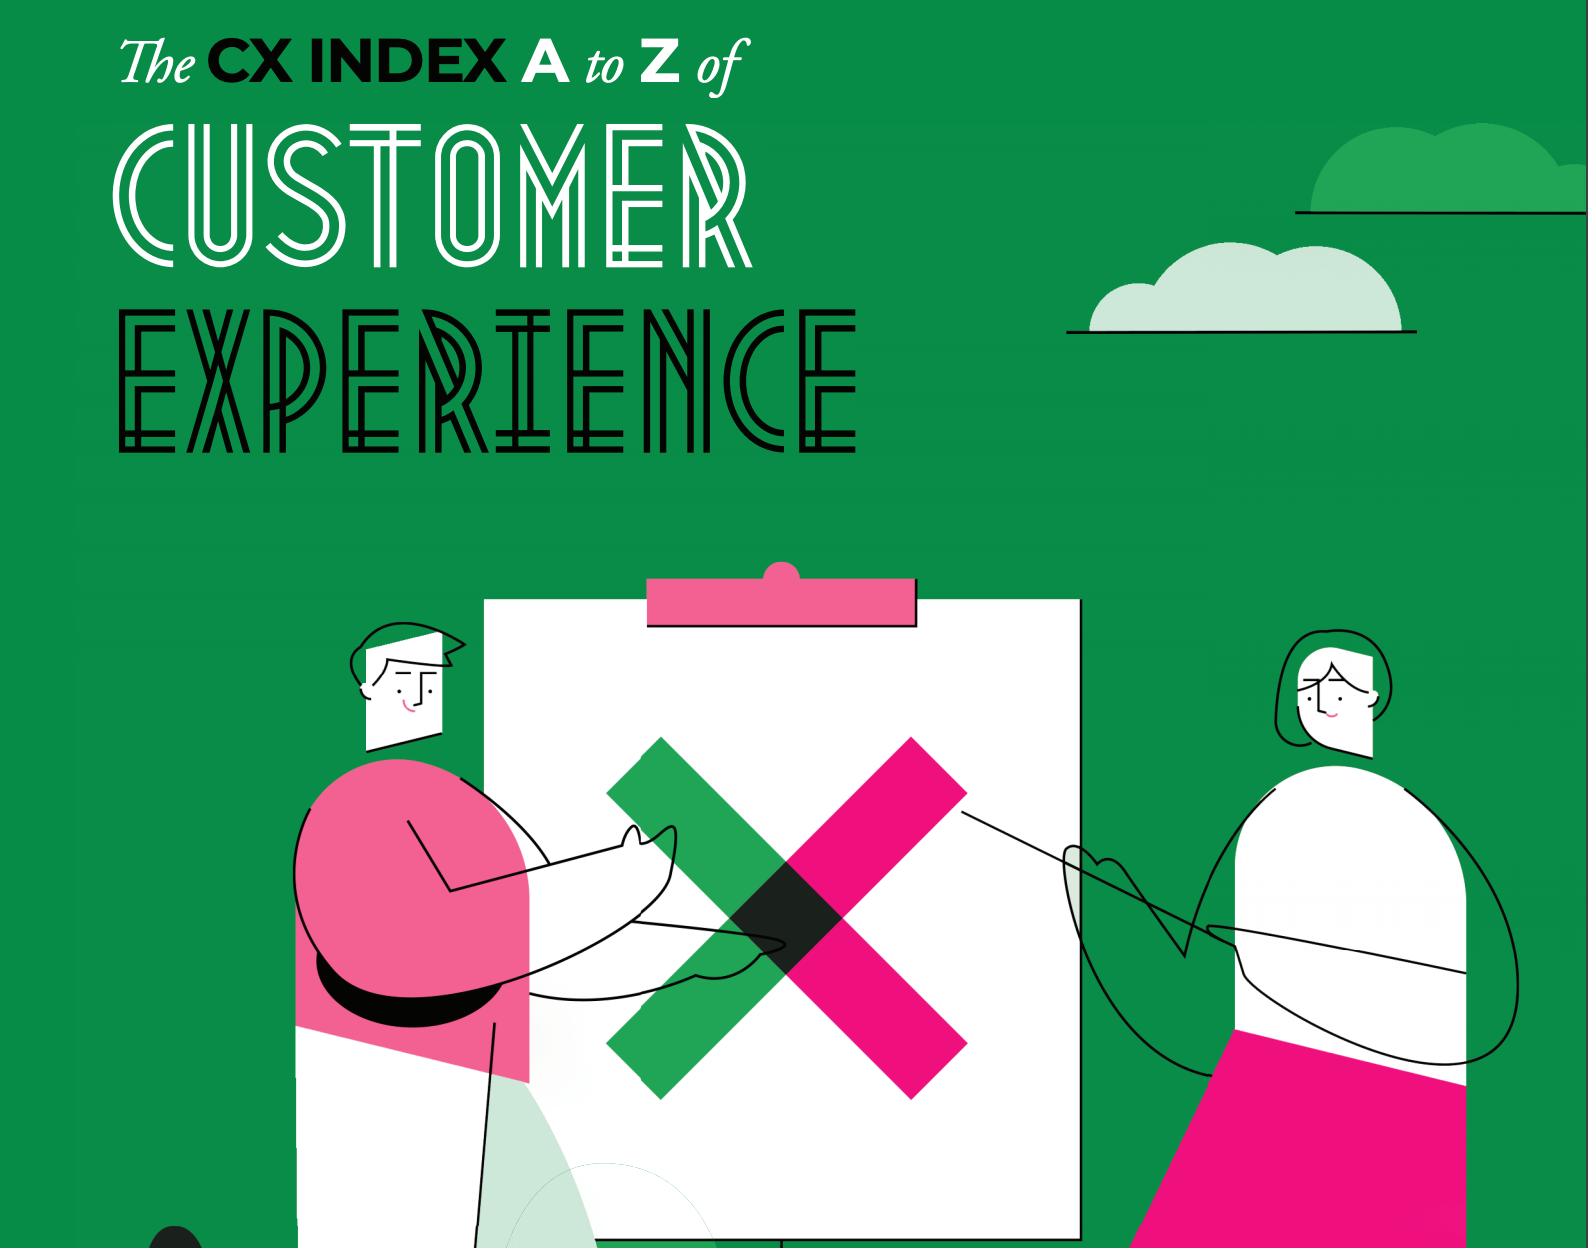 The A-Z of CX